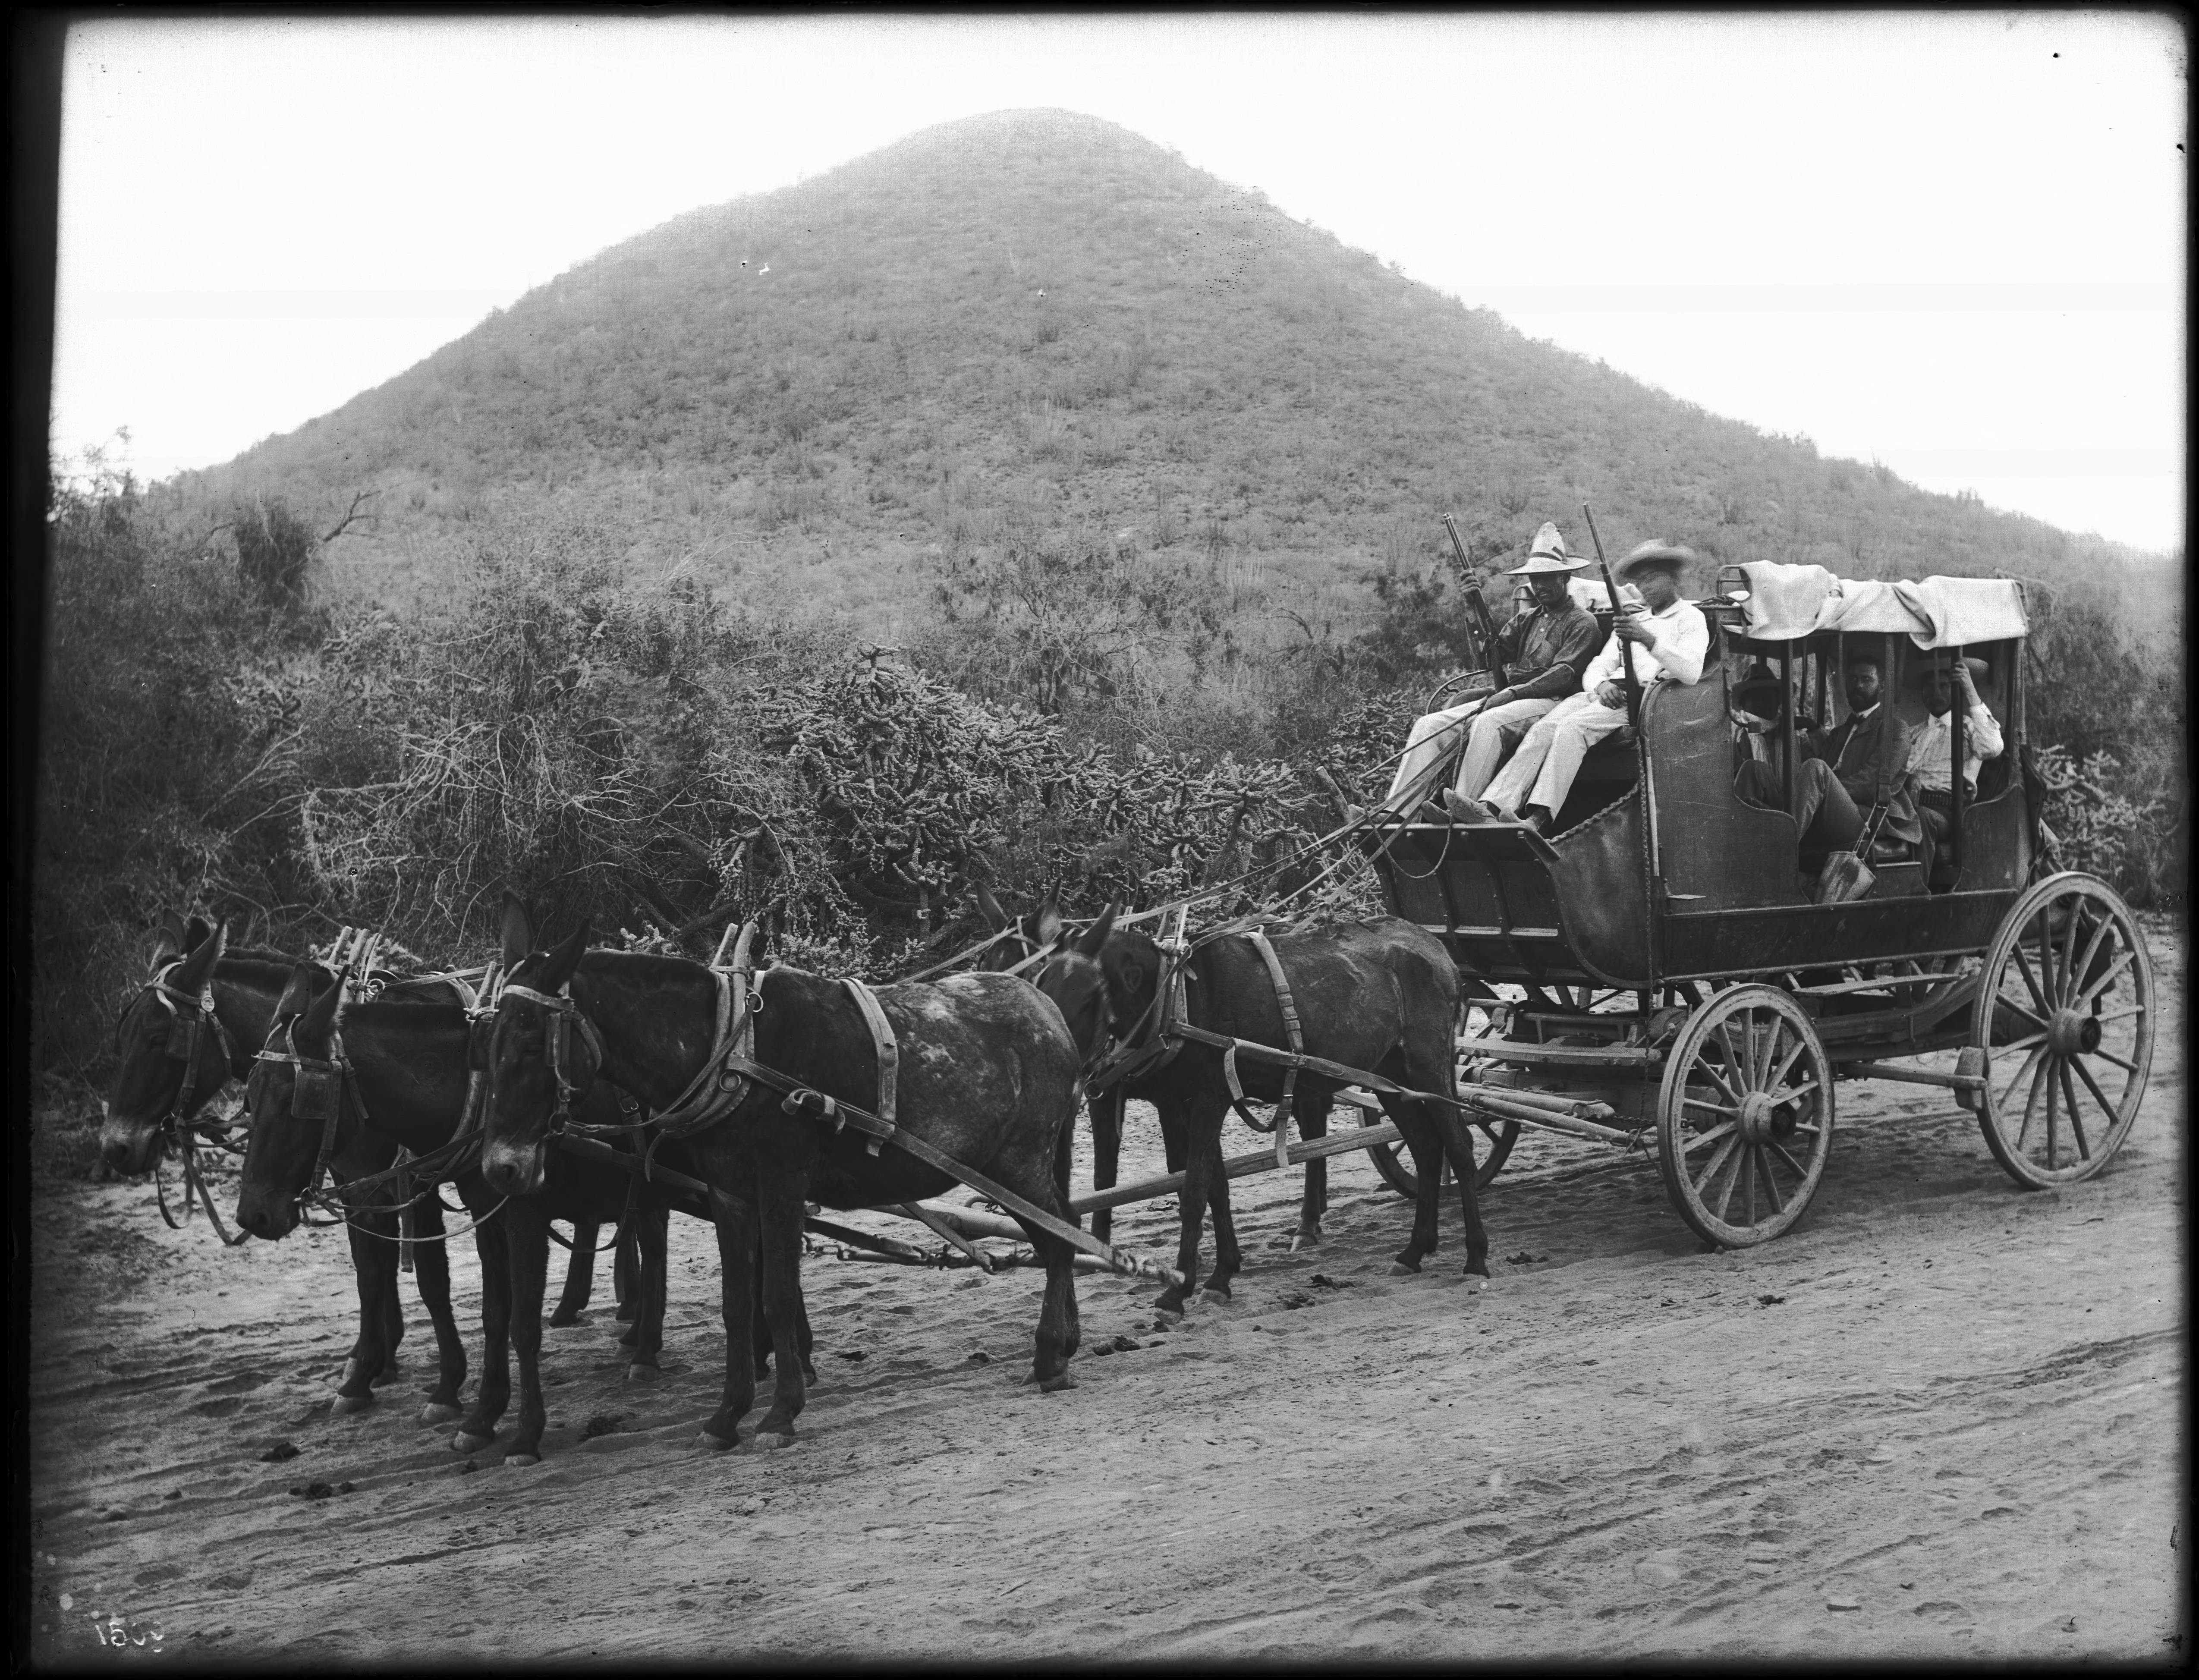 File:Stage coach drawn by five horses along the river route, Rio Yaqui (